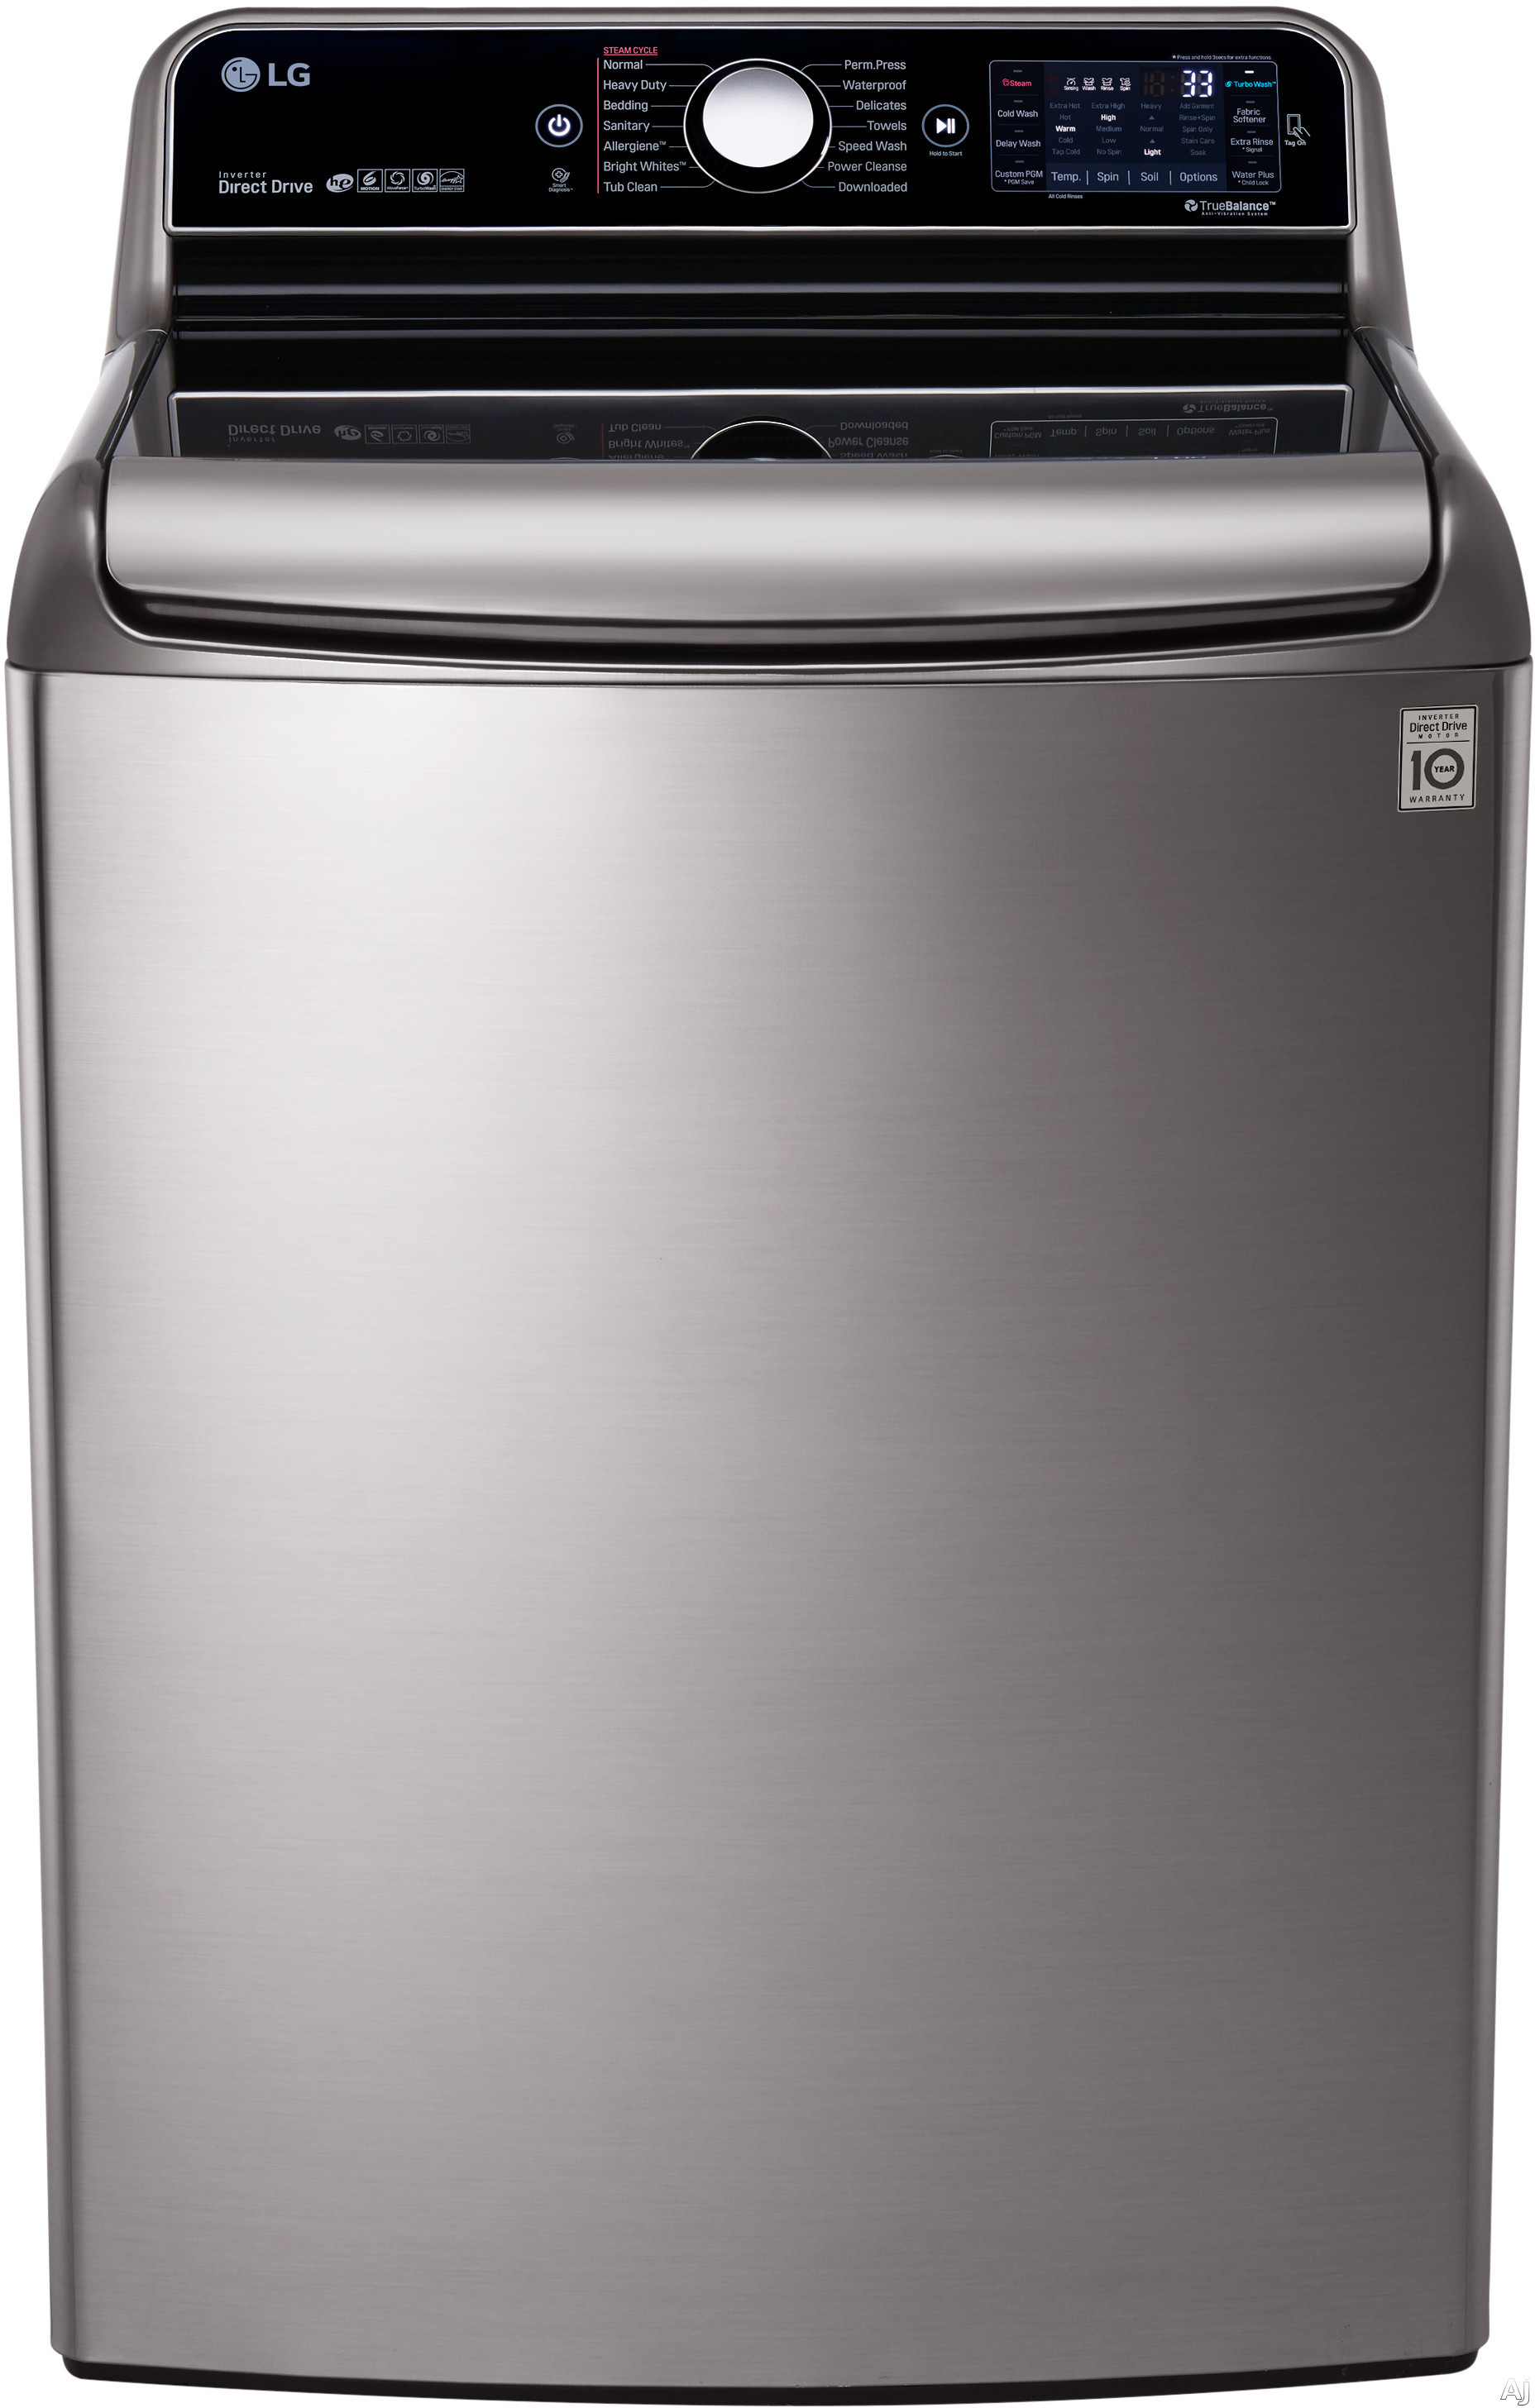 LG TurboWash Series WT7700H 29 Inch 5.7 cu. ft. Top Load Washer with 14 Wash Cycles, 1,050 RPM, Steam, TurboWash Technology, StainCare, Speed Wash, Allergiene Cycle, Sanitary Cycle, Smart Diagnosis and ENERGY STAR Qualification